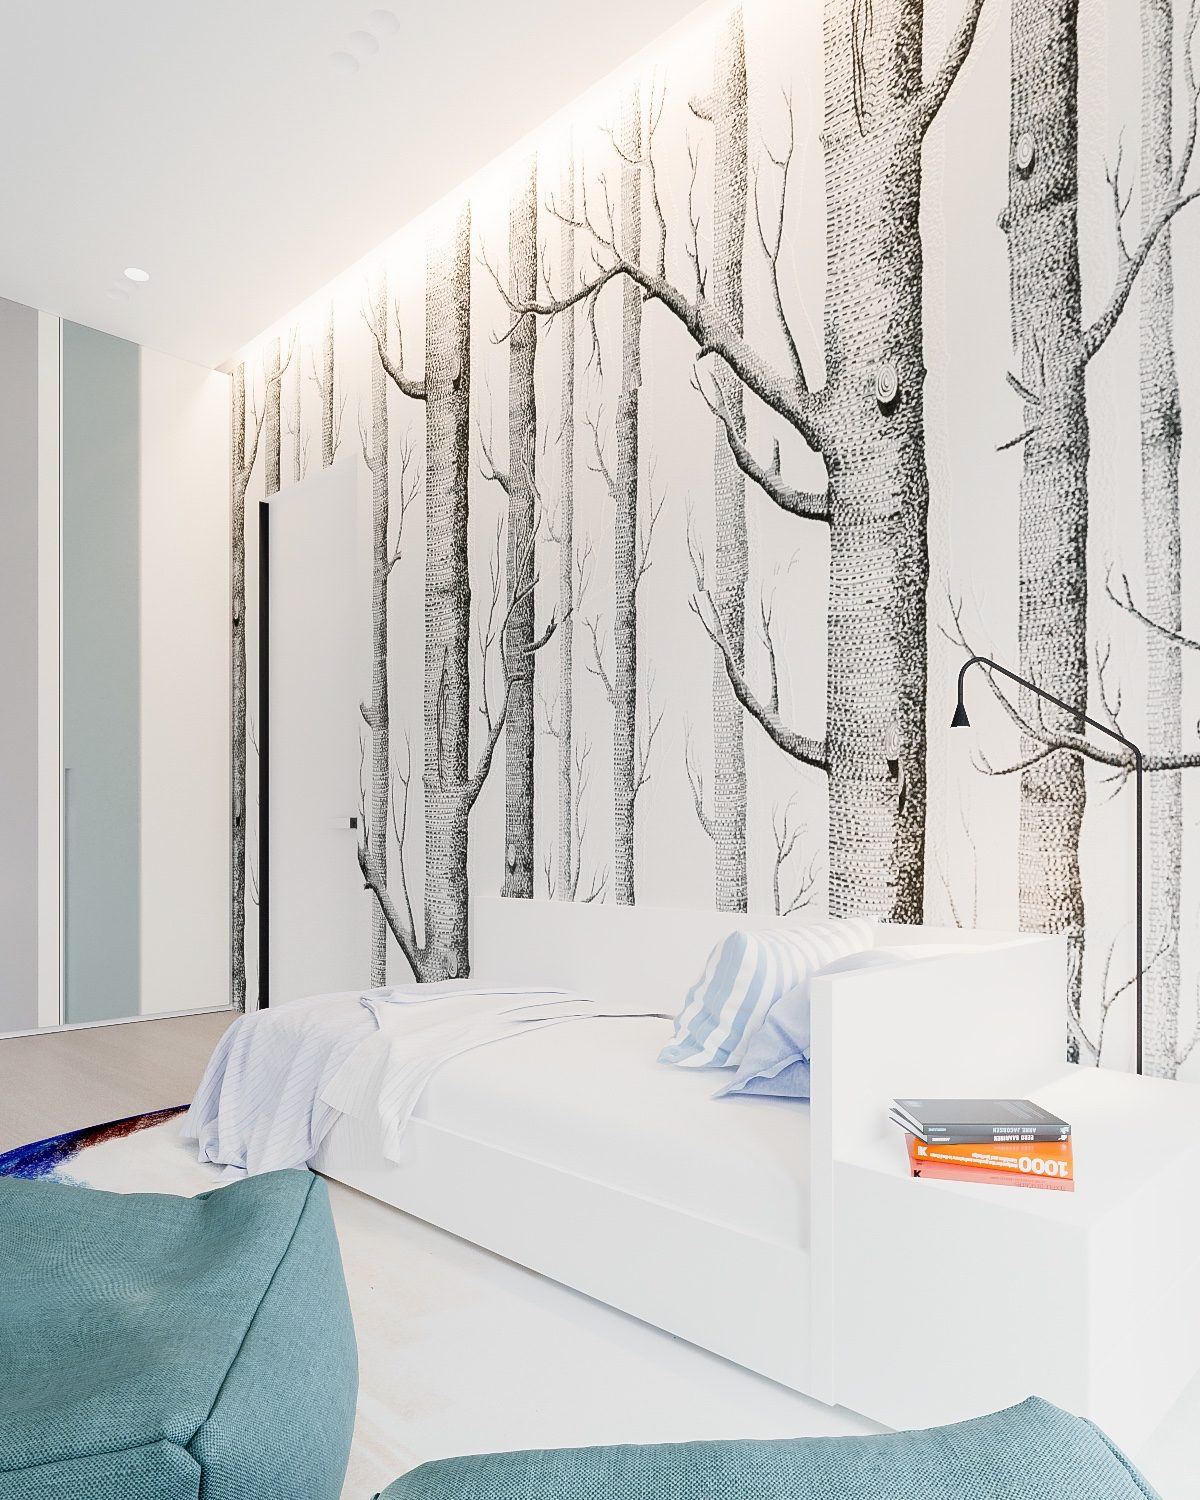 Forest Wallpaper In Home Office - A minimalist family home with a bright bedroom for the kids